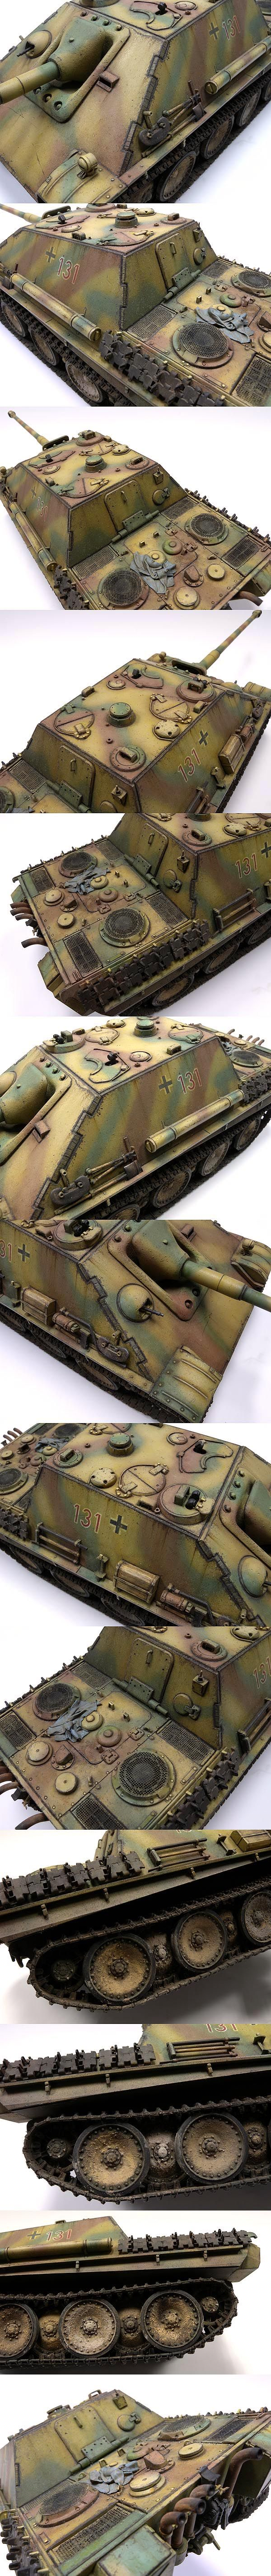 Jagpanther (Sd. Kfz. 173) 1/35 Scale Model